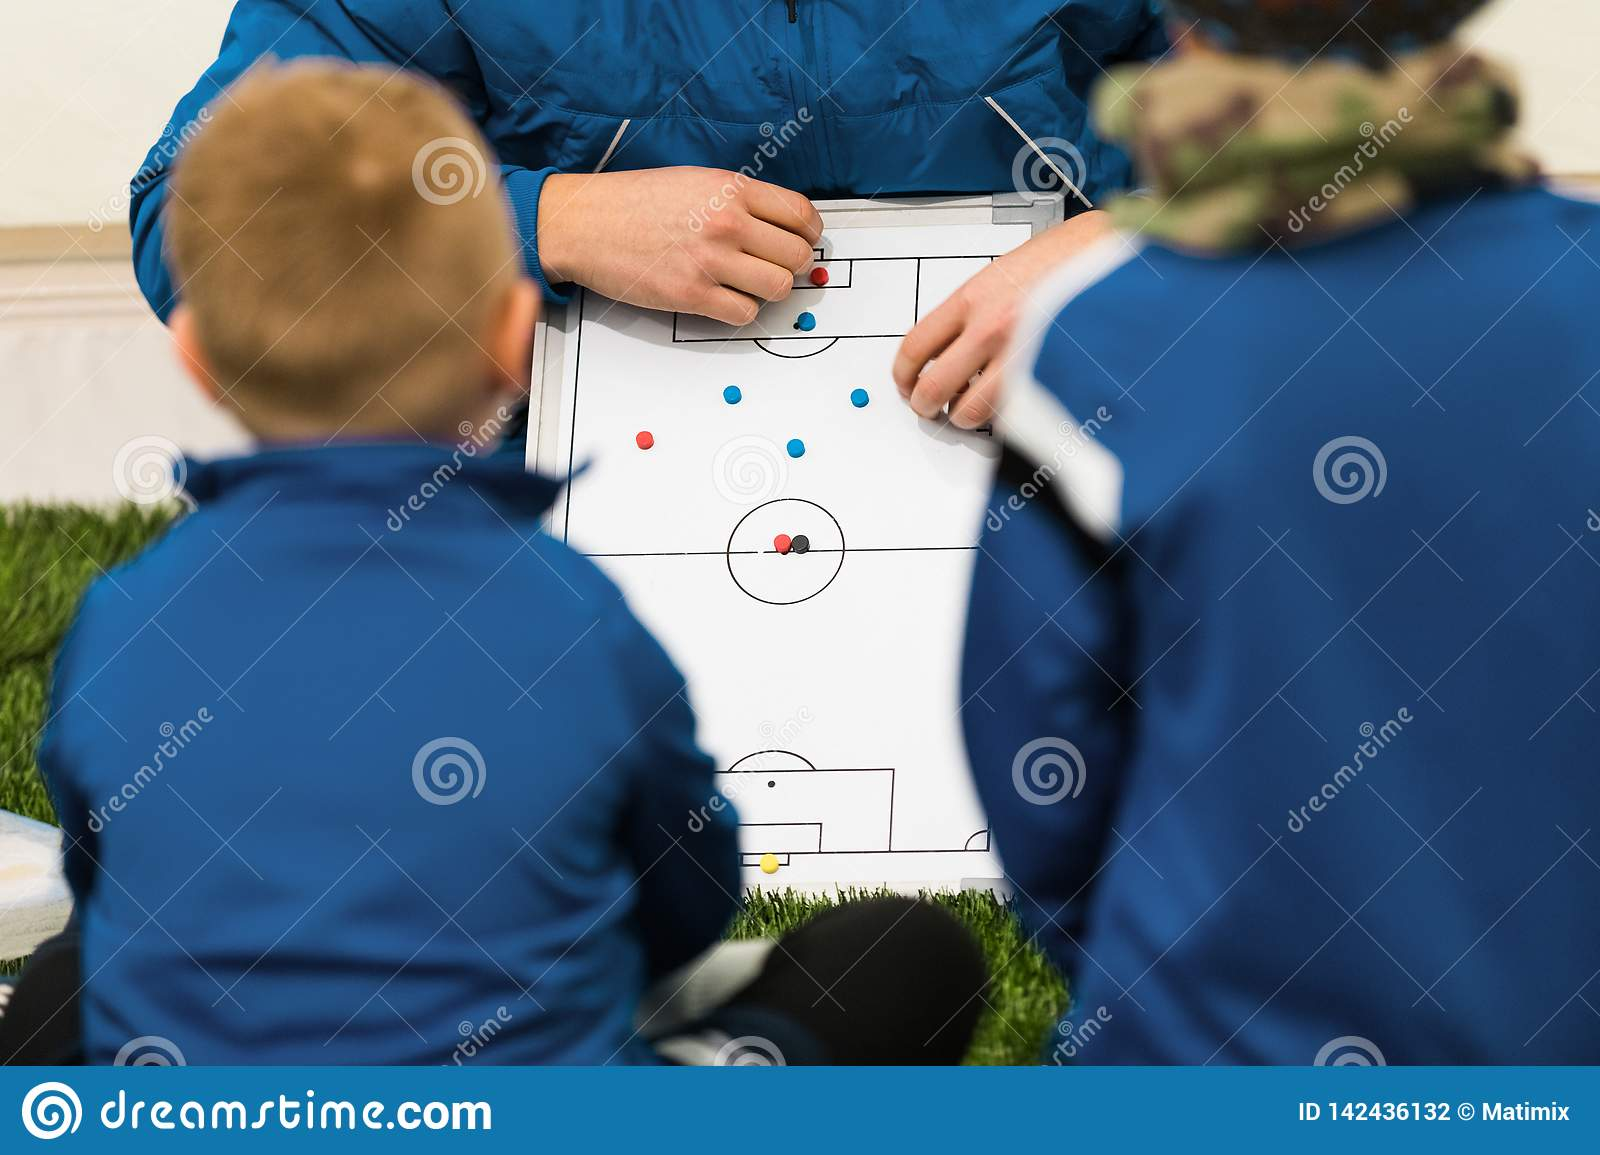 Football Coach Coaching Kids. Young Soccer Players Listening Coaches Tactics and Motivational Talk